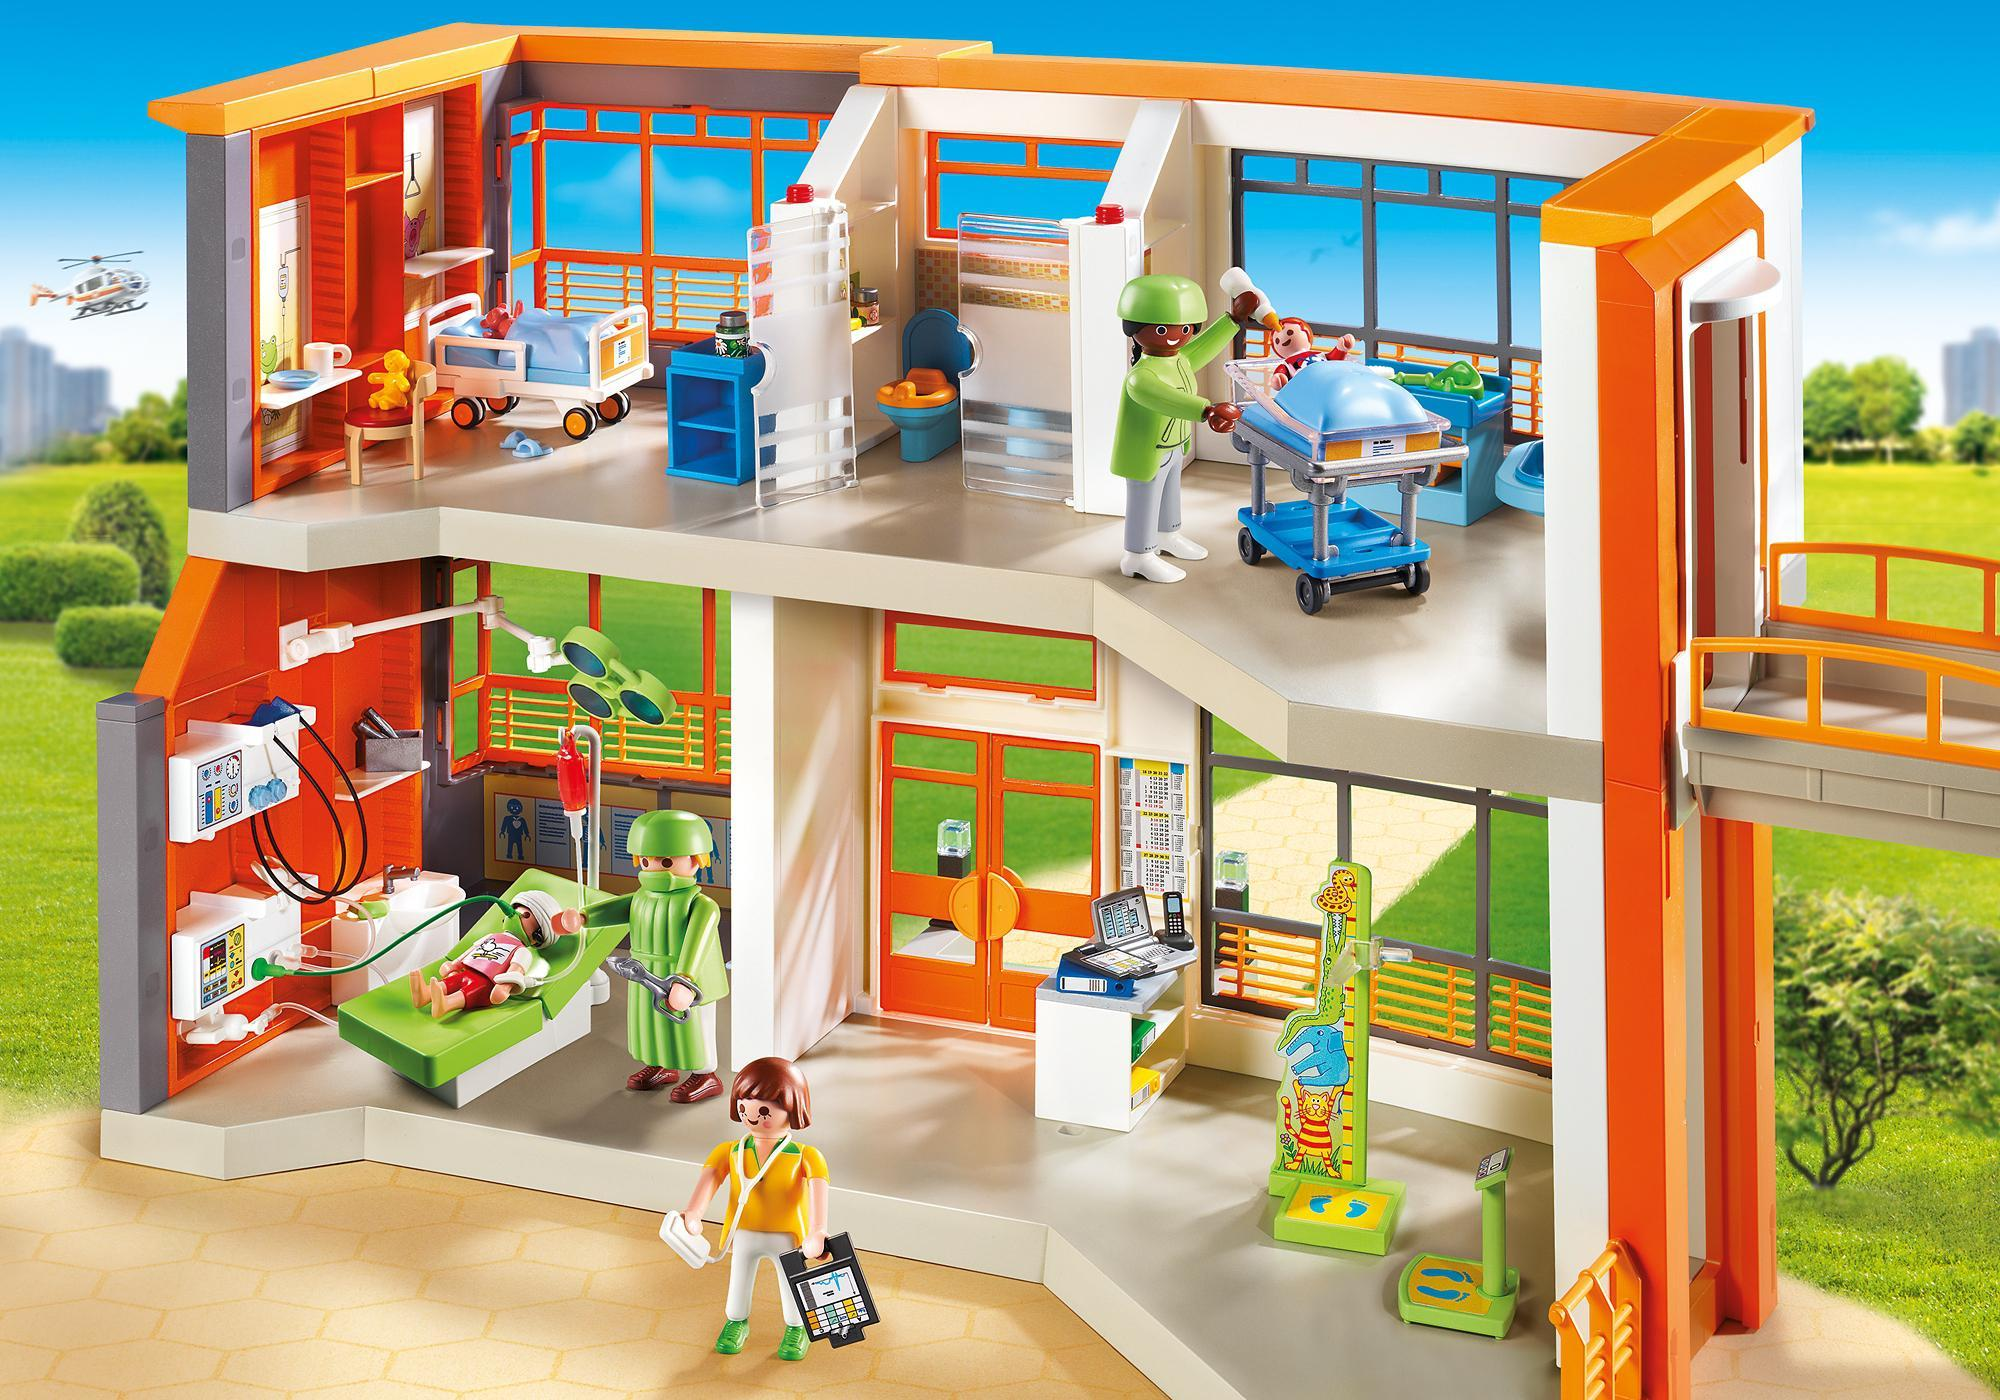 http://media.playmobil.com/i/playmobil/6657_product_detail/Hospital Infantil